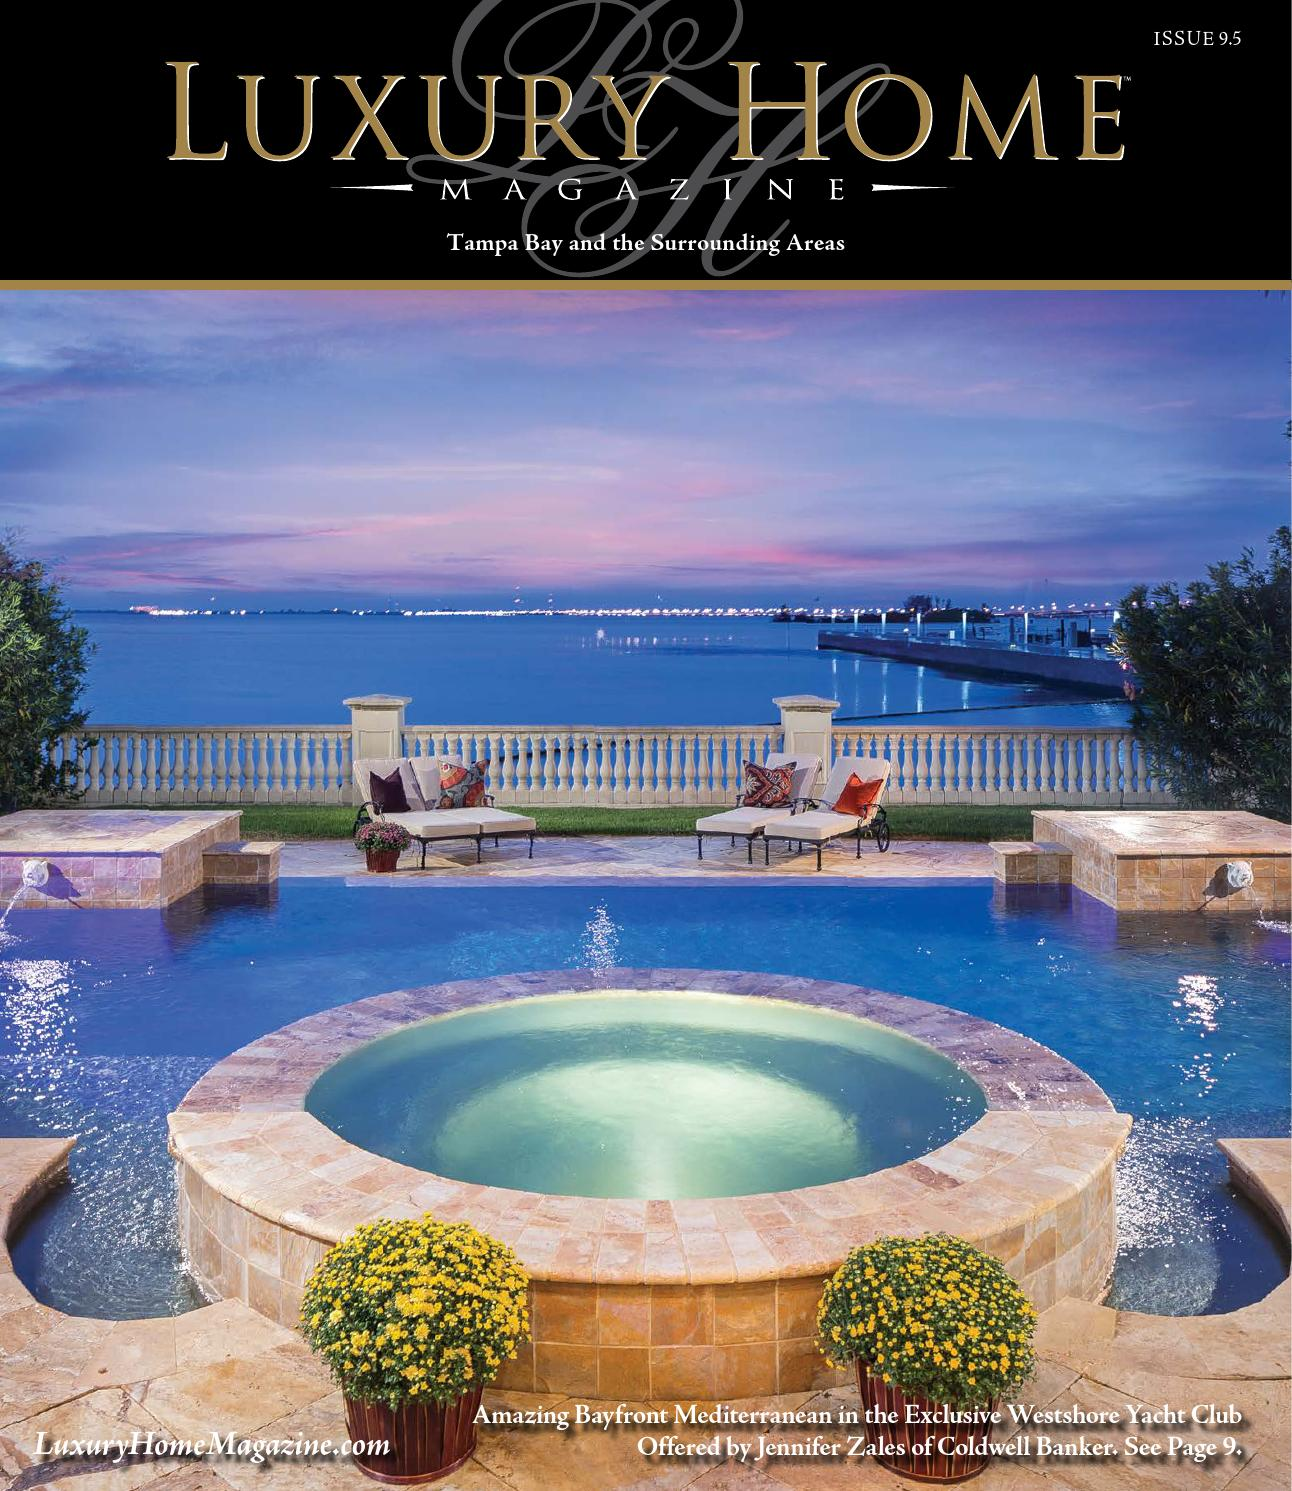 Luxury Home Magazine Tampa Bay Issue 9.5 By Luxury Home